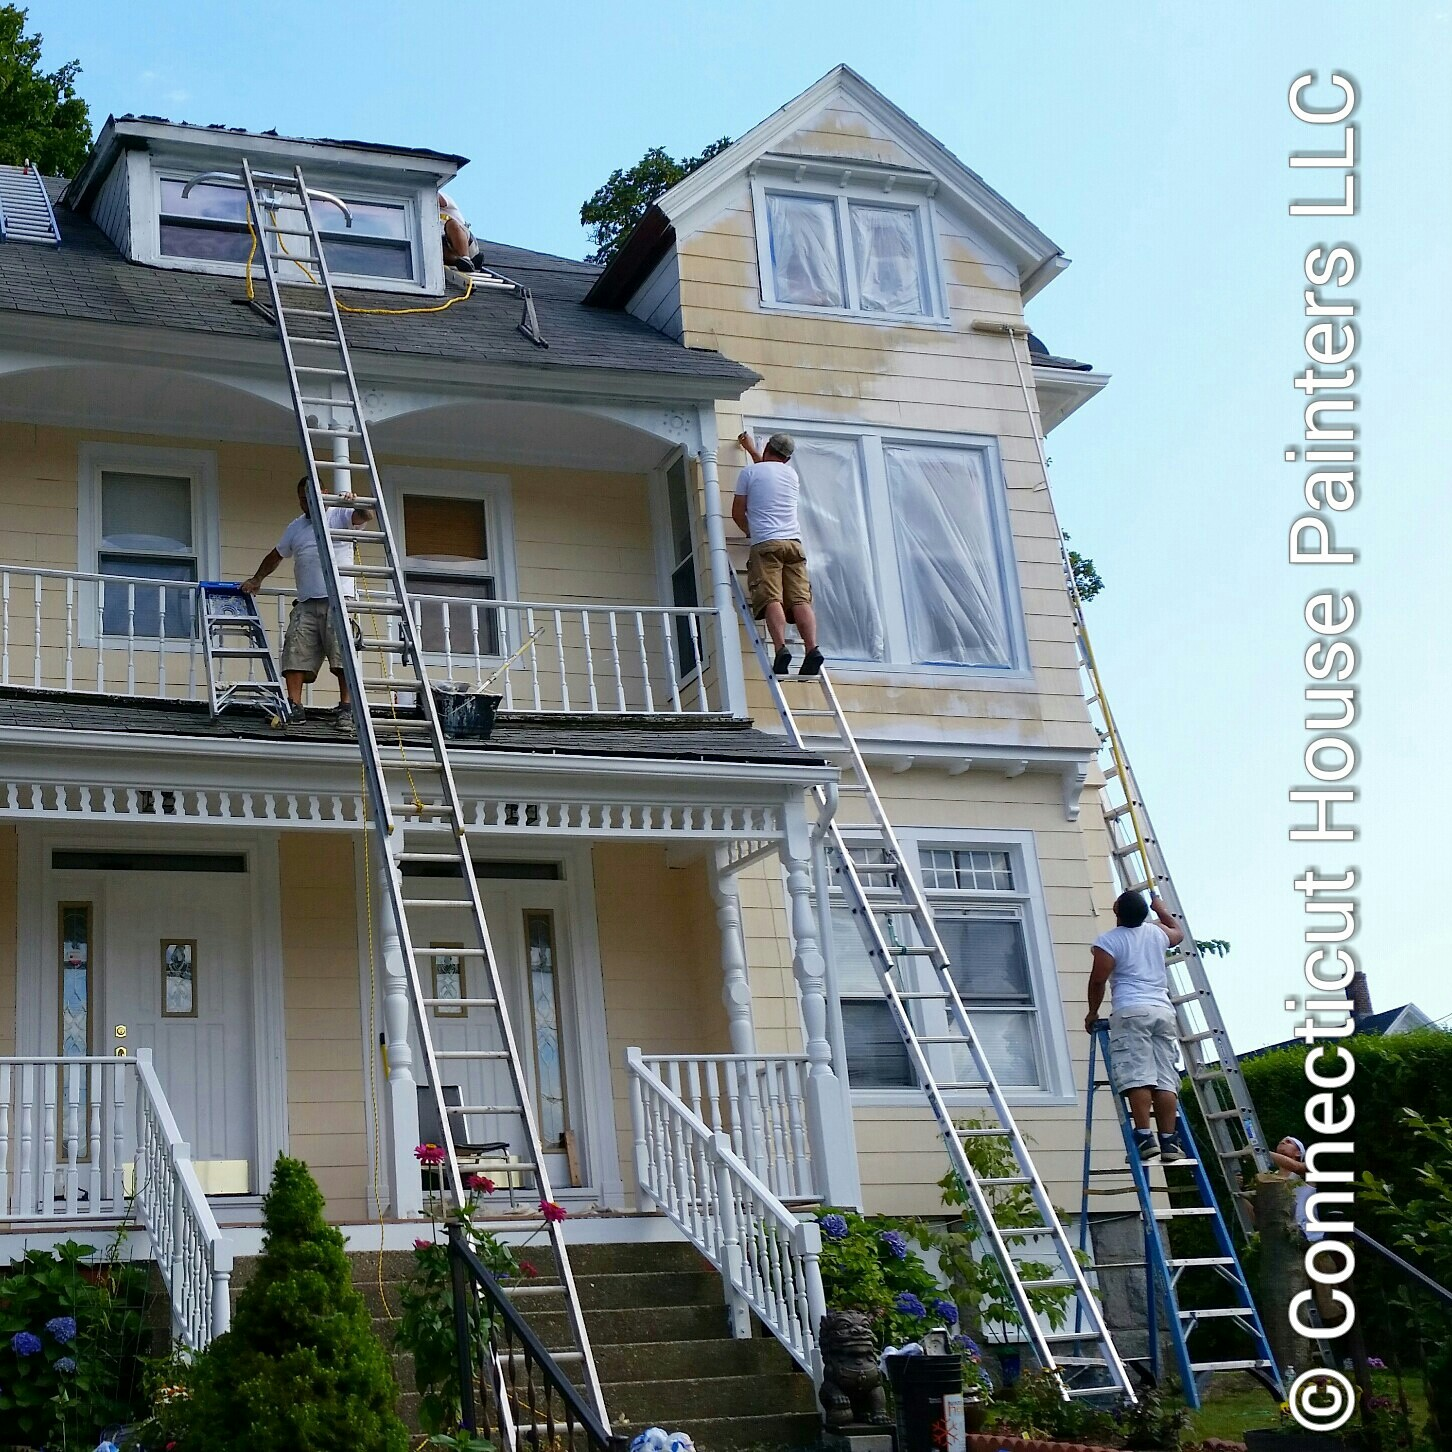 House Painters Near Me 28 Images House Painters Near Me By Paintersnearme On Deviantart